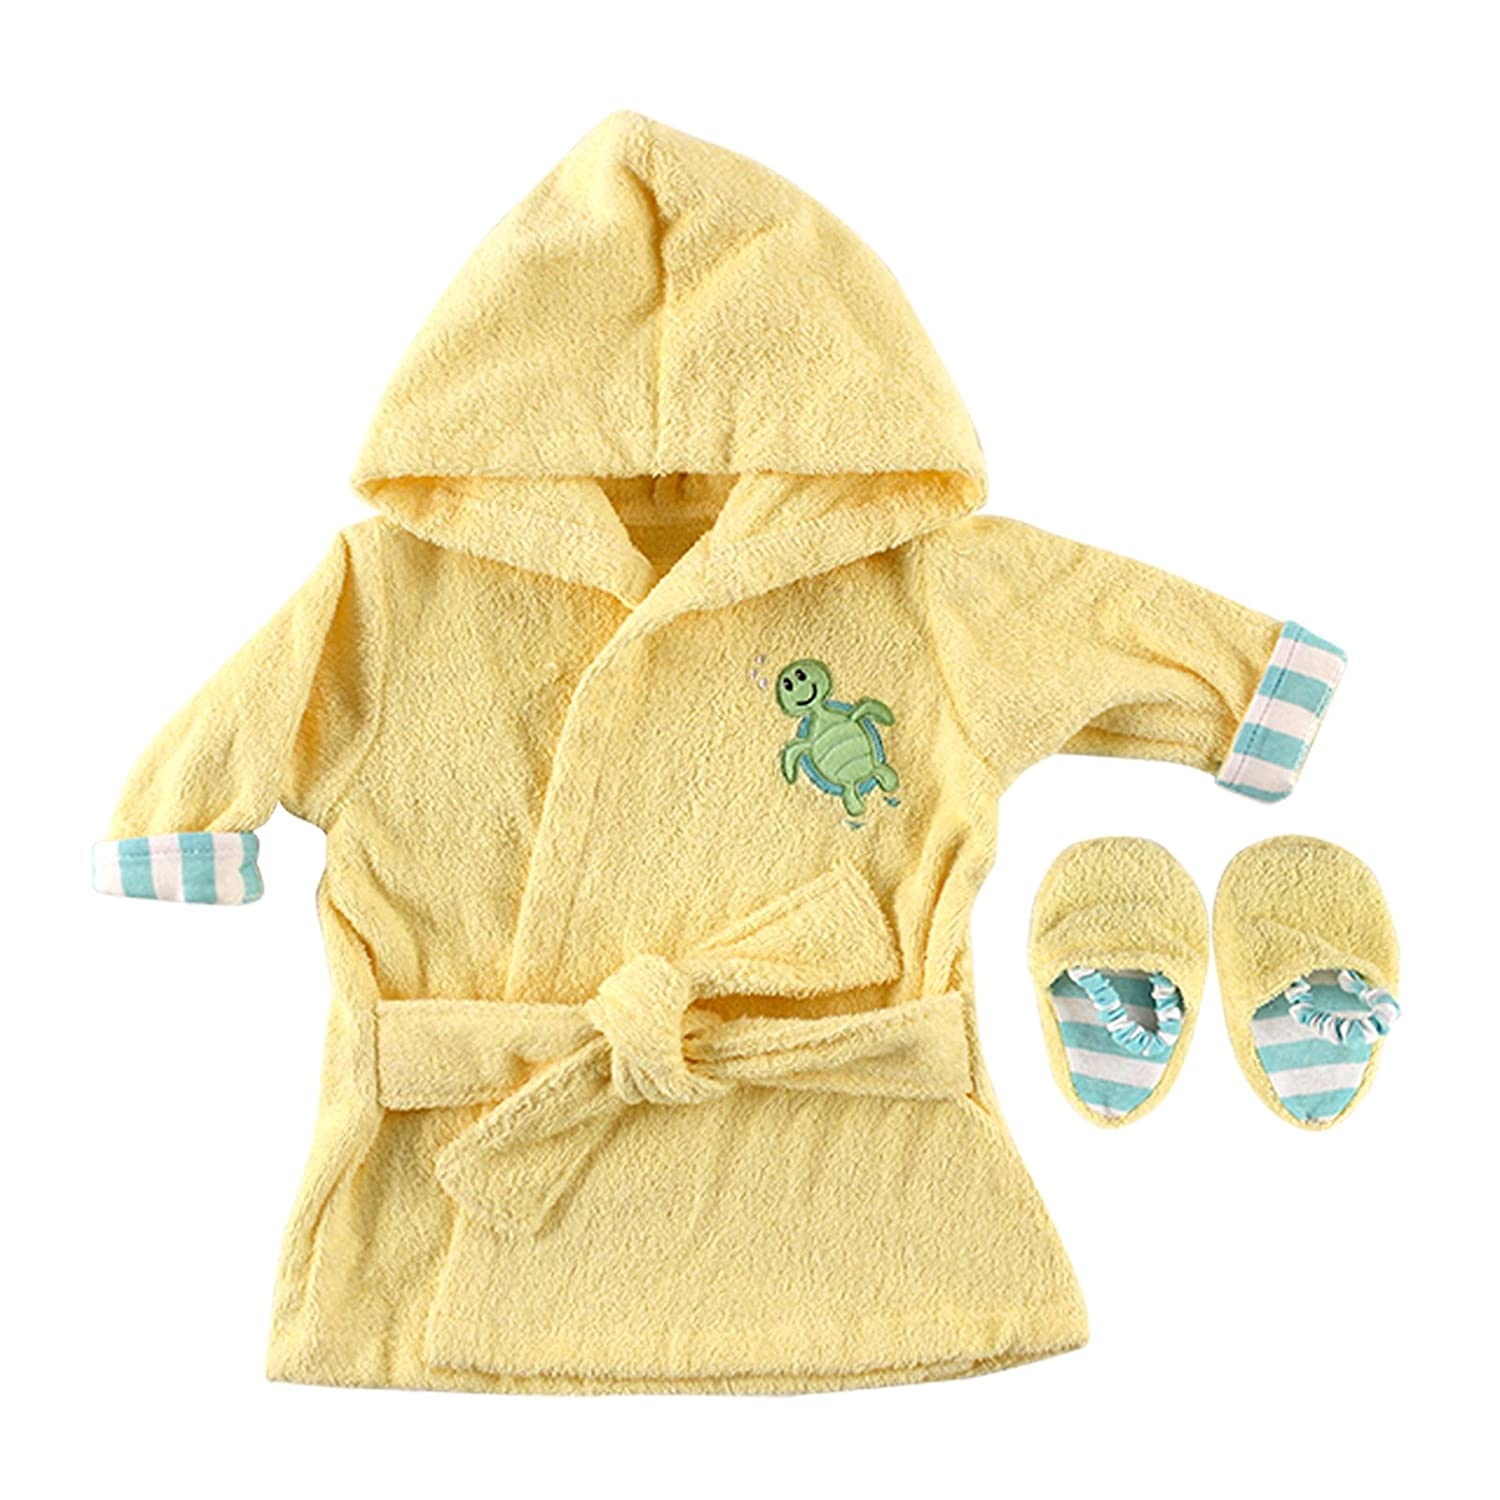 Luvable Friends Color Bath Robe with Slippers - Woven Terry in Yellow BabyVision 10305158_Yellow